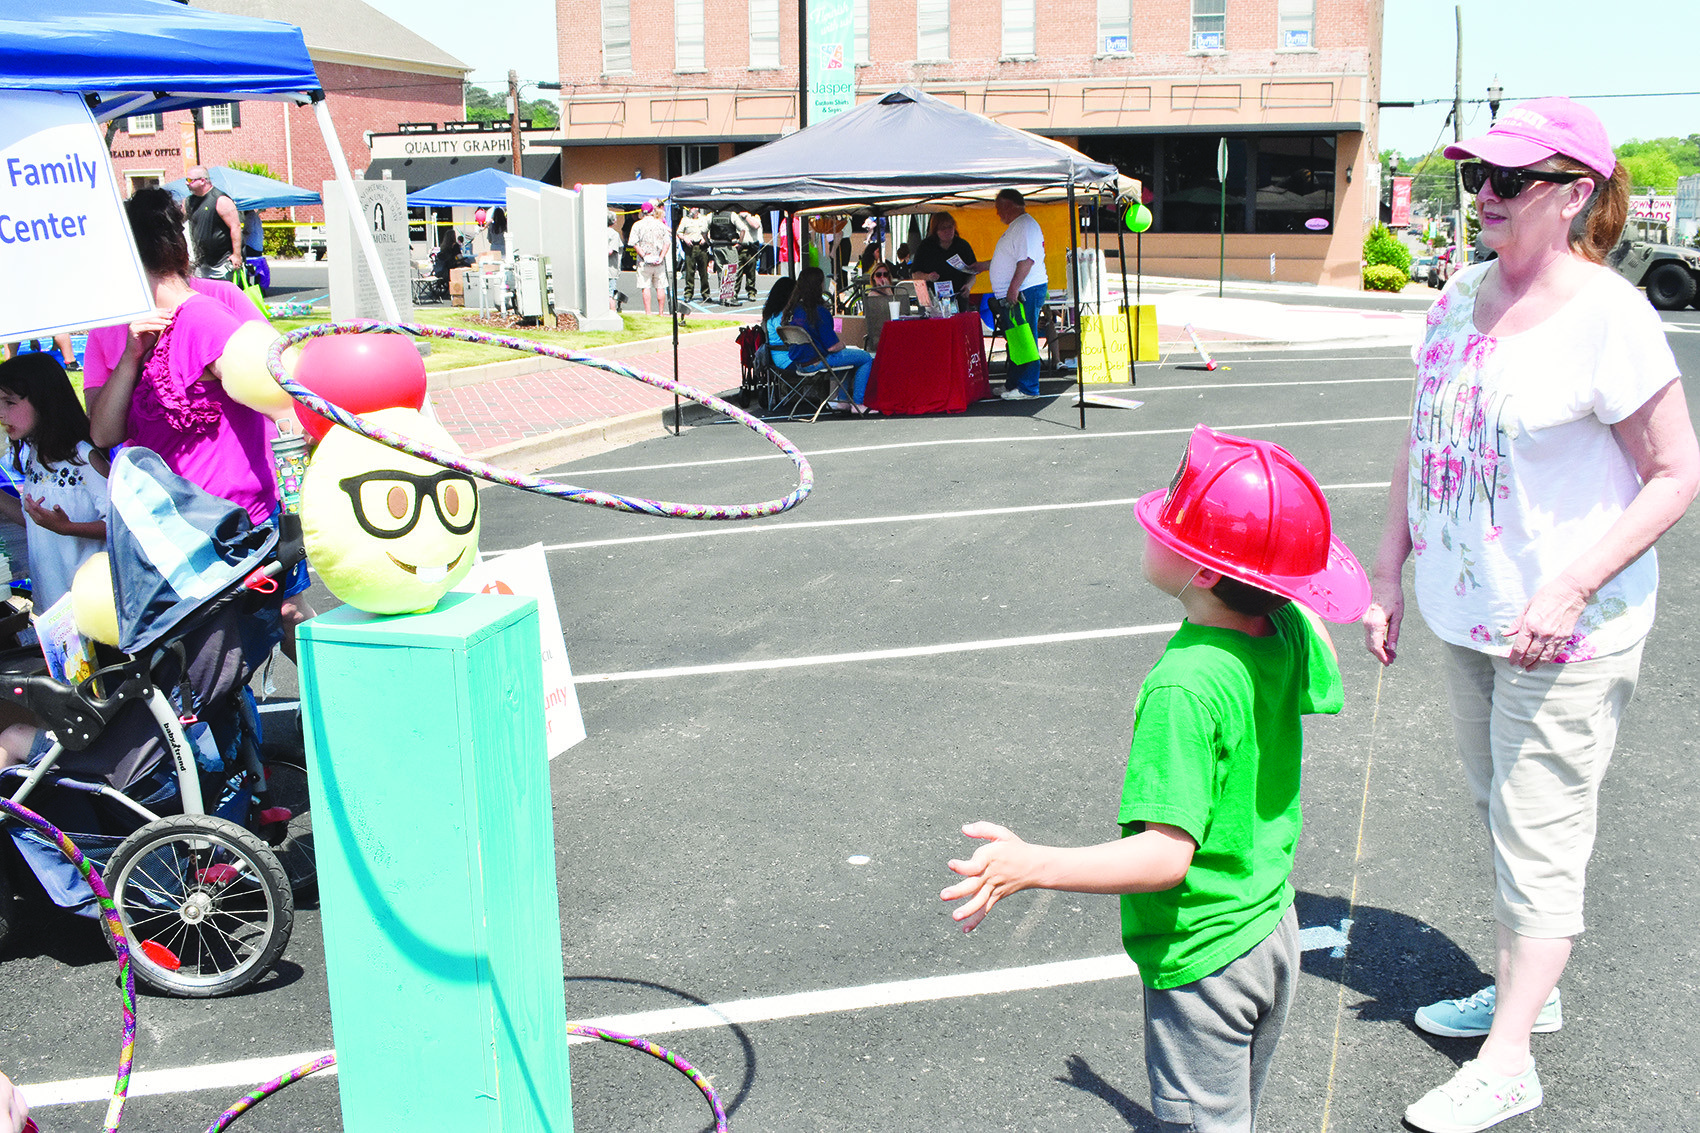 Children enjoyed games, food and other treats under clear, hot skies Saturday afternoon in downtown Jasper as the Walker County Advocacy Center and the Walker Area Community Foundation hosted its fourth annual Safe Kids Expo, which was postponed from last month due to bad weather.